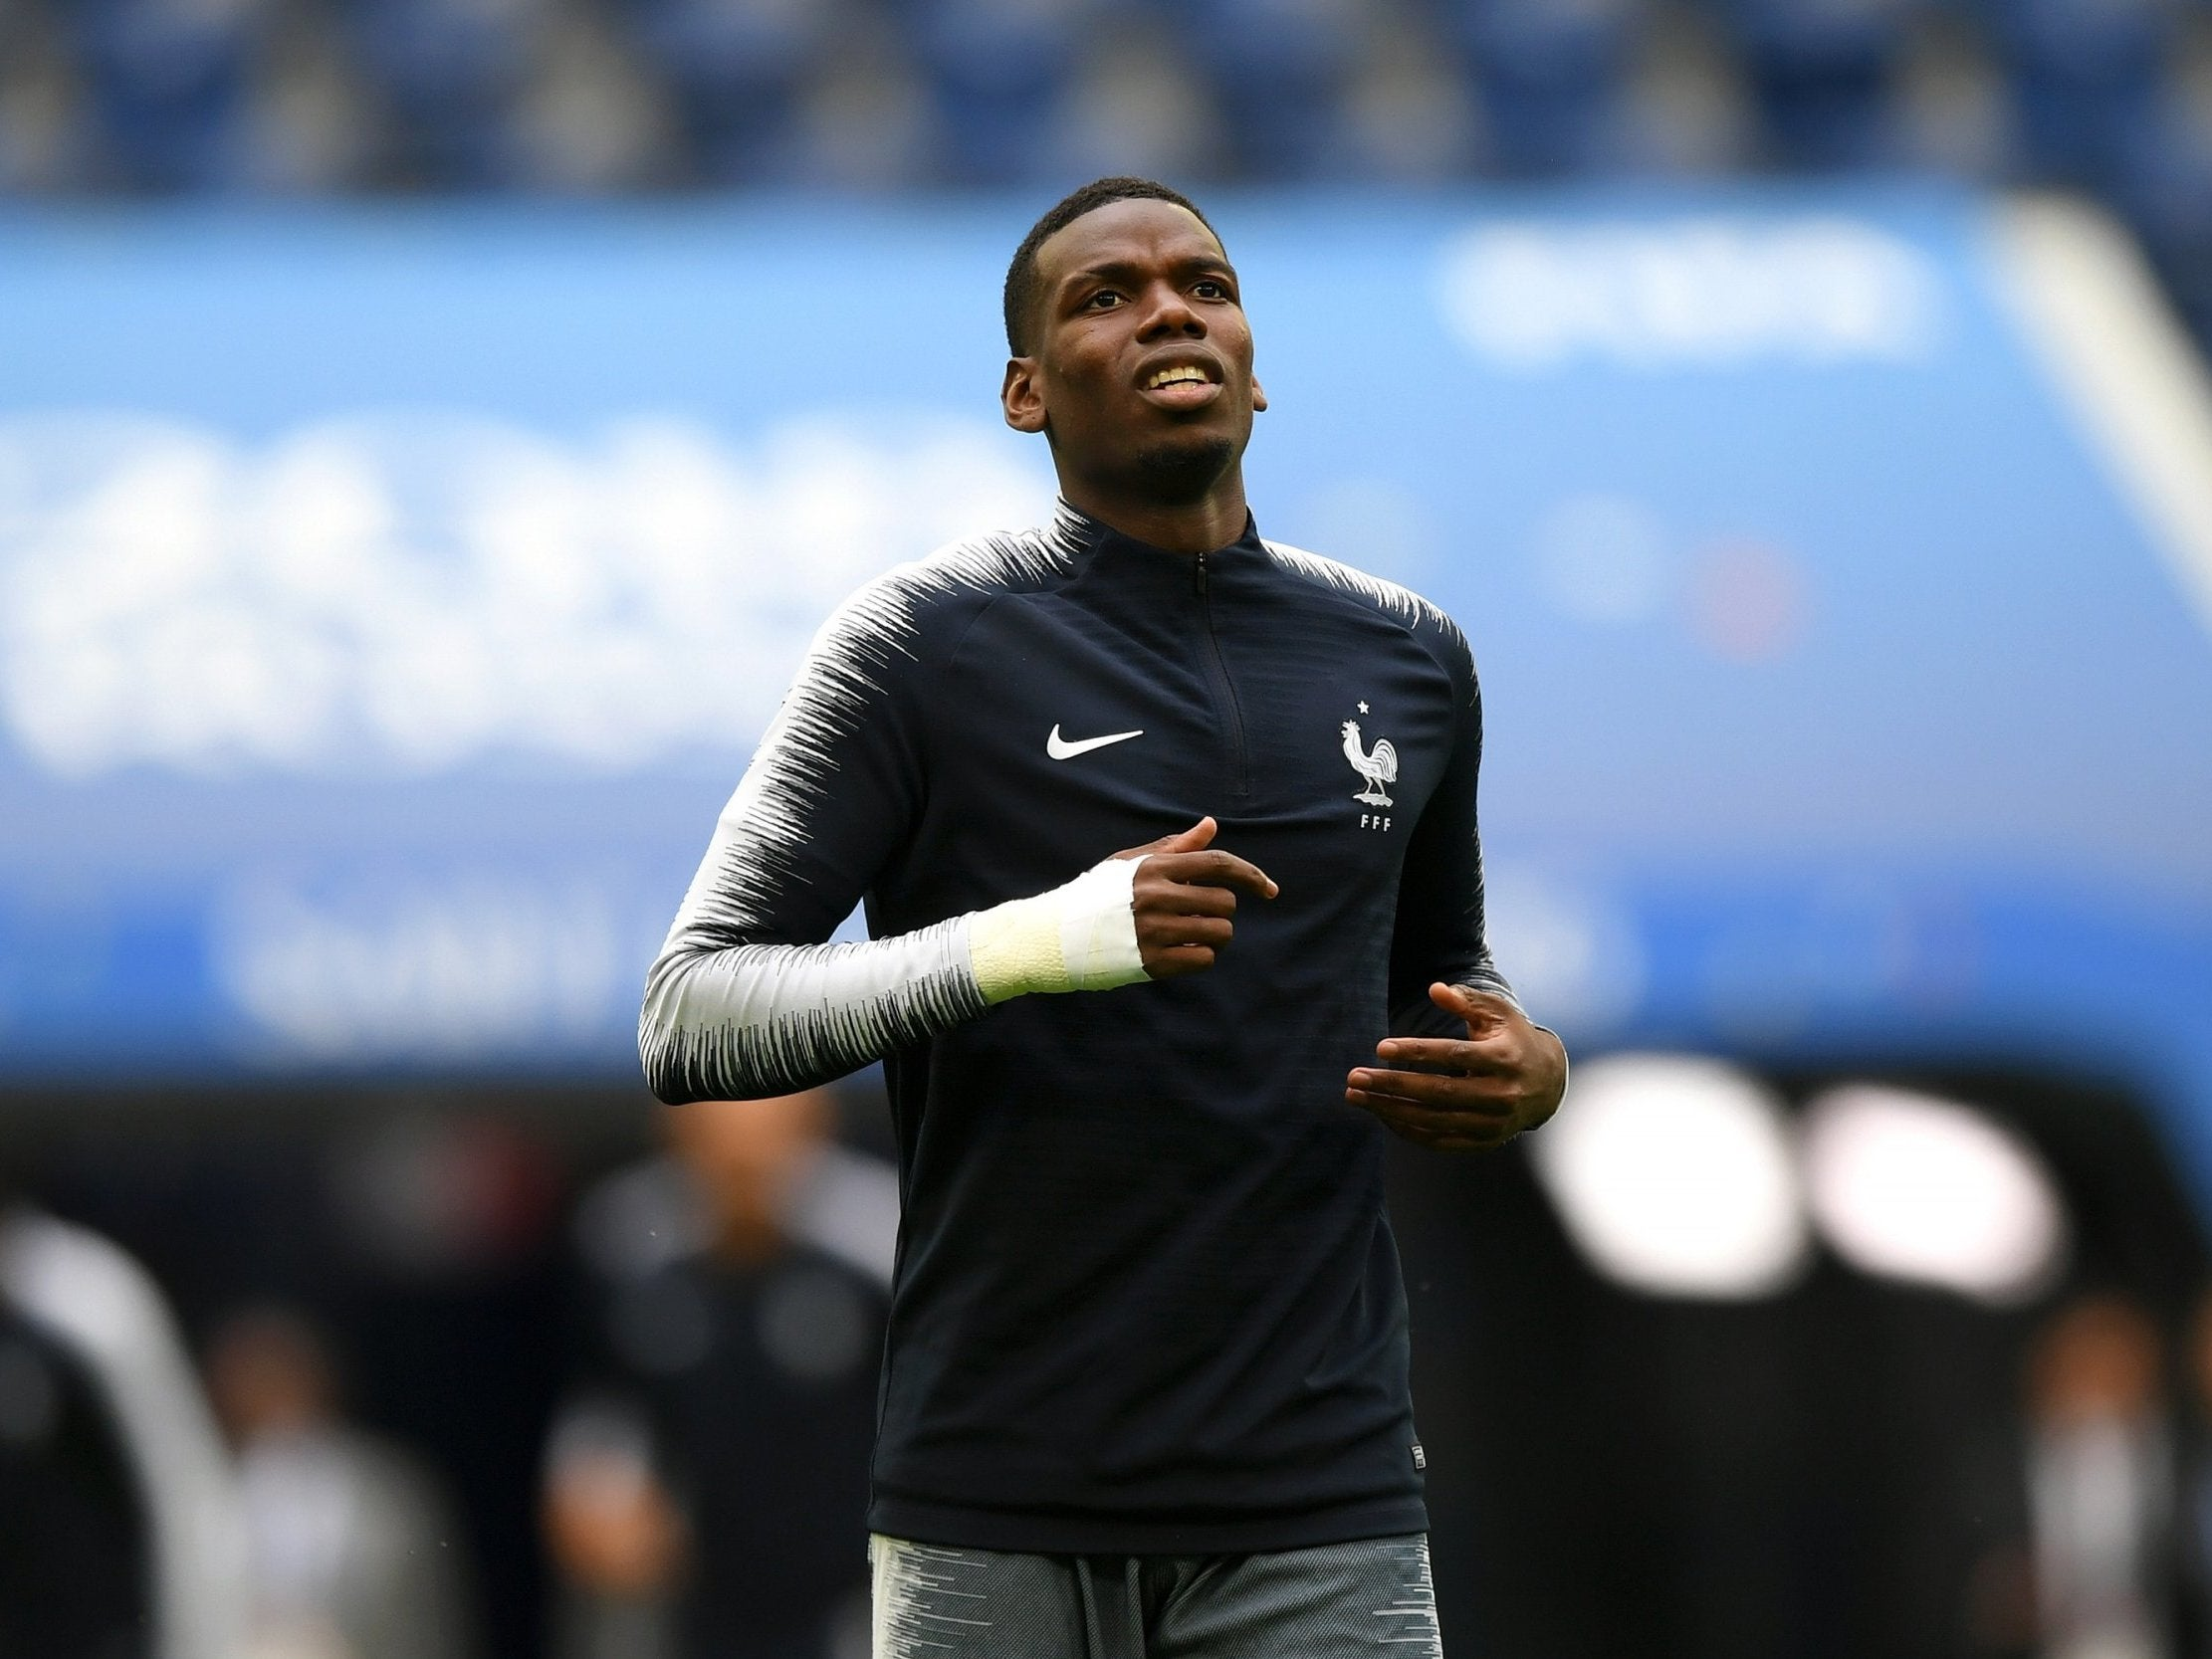 World Cup 2018: Paul Pogba Has Excelled Under The Radar So